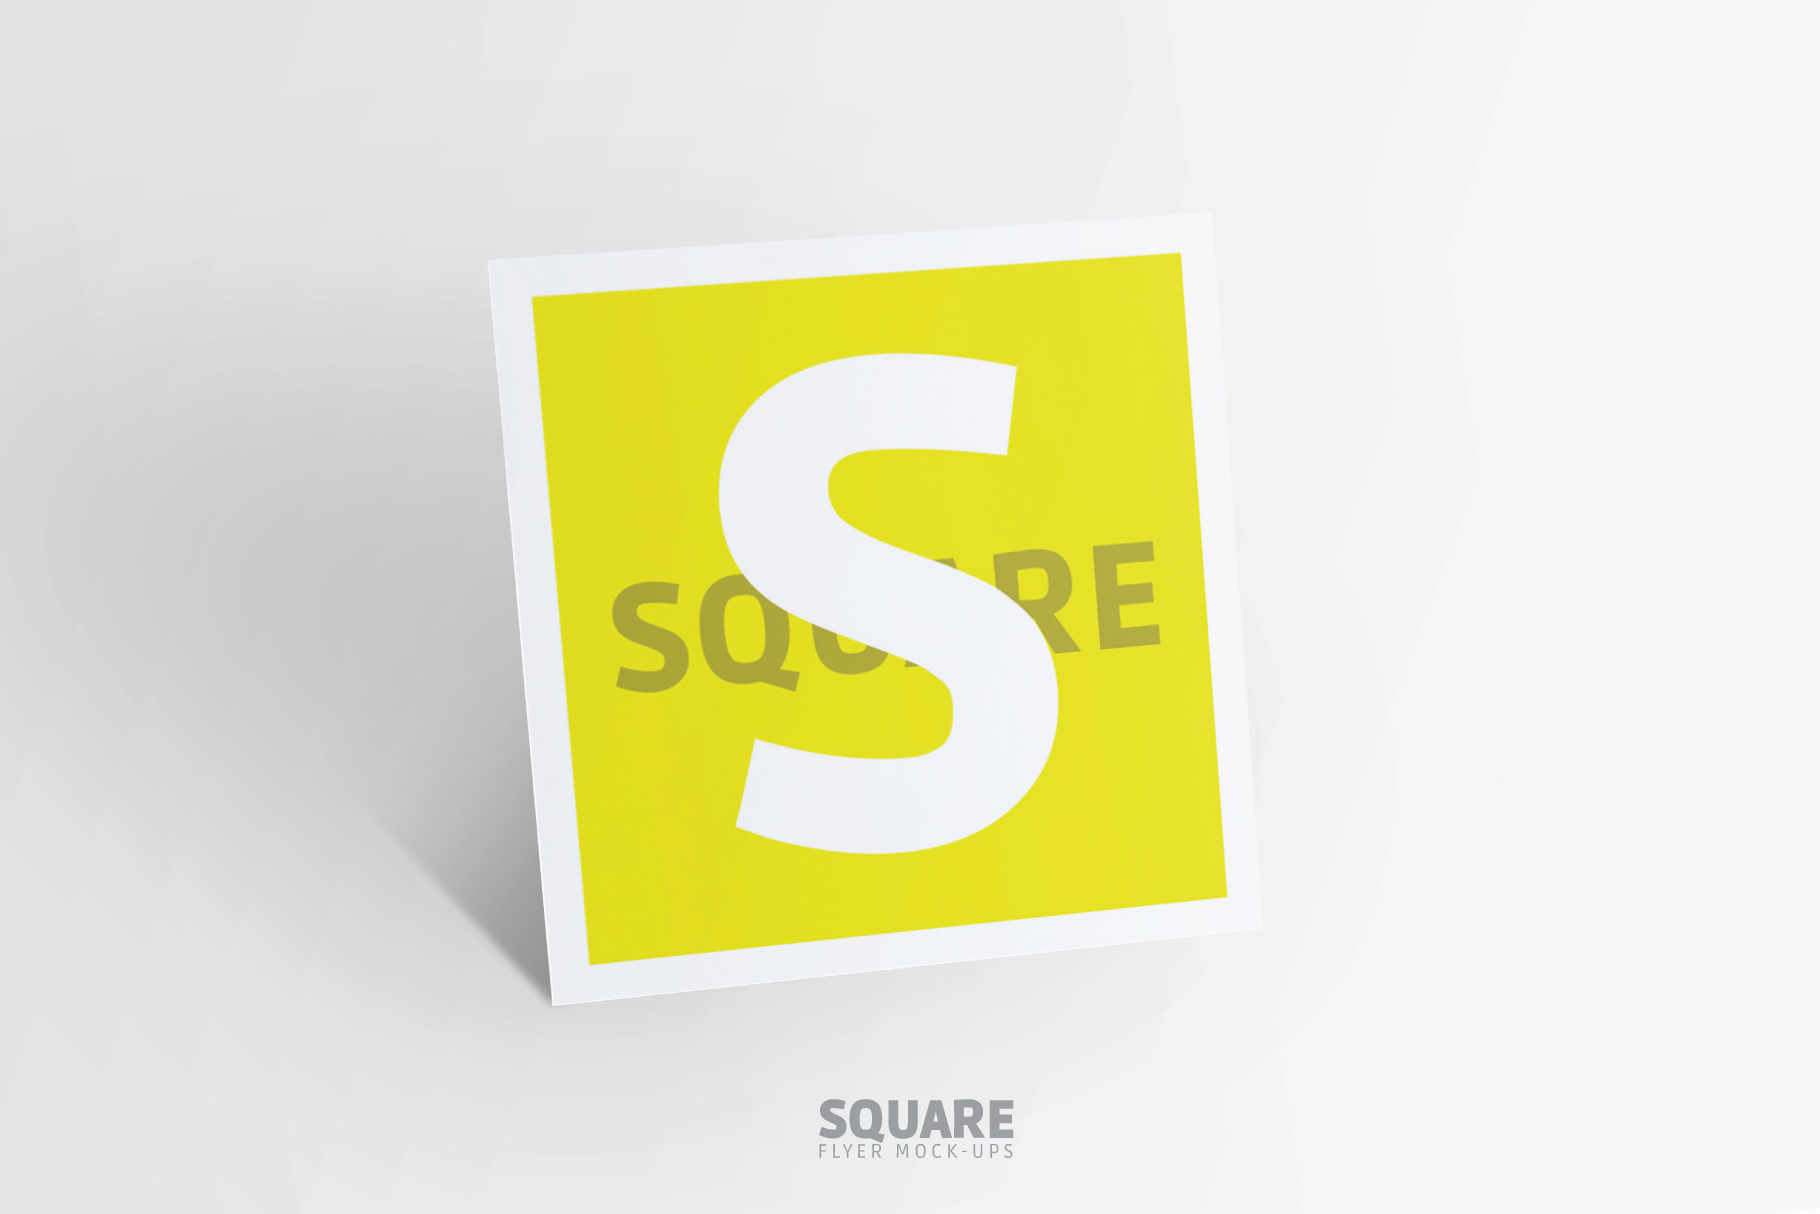 Square Flyer Mock-Up example image 5